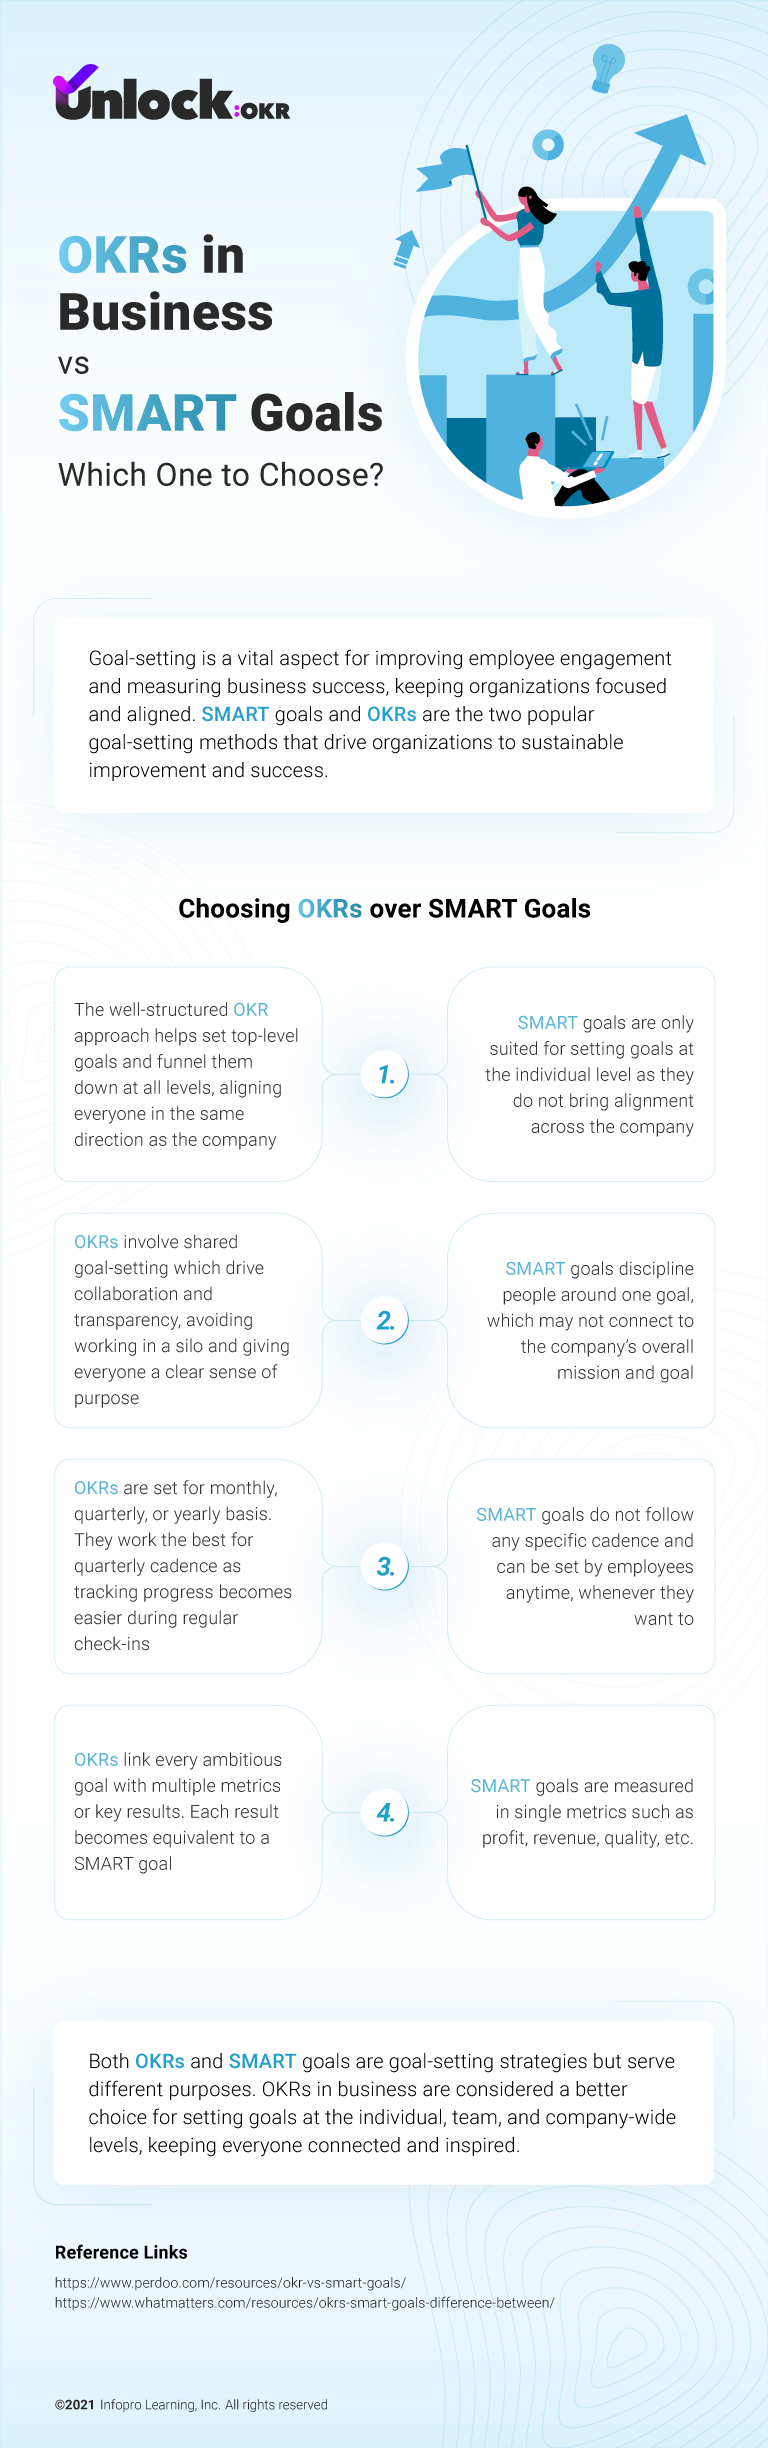 OKRs in Business Vs SMART Goals- Which One to Choose?